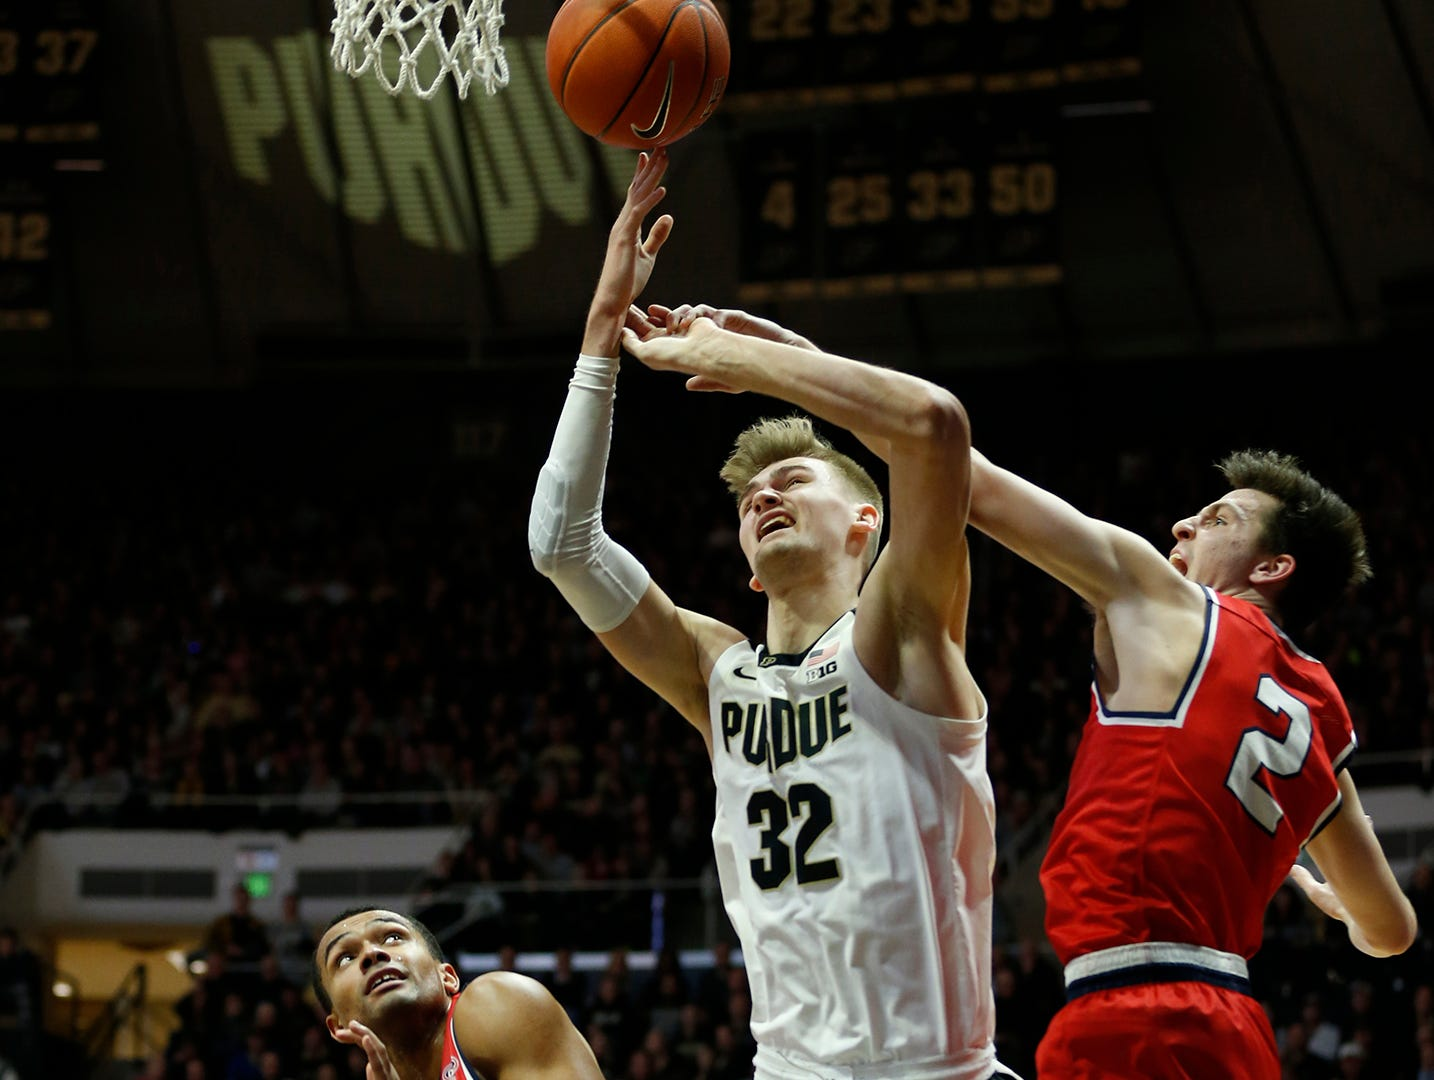 Matt Haarms of Purdue is fouled by Grayson Murphy of Belmont Saturday, December 29, 2018, at Mackey Arena. Purdue defeated Belmont 73-62.